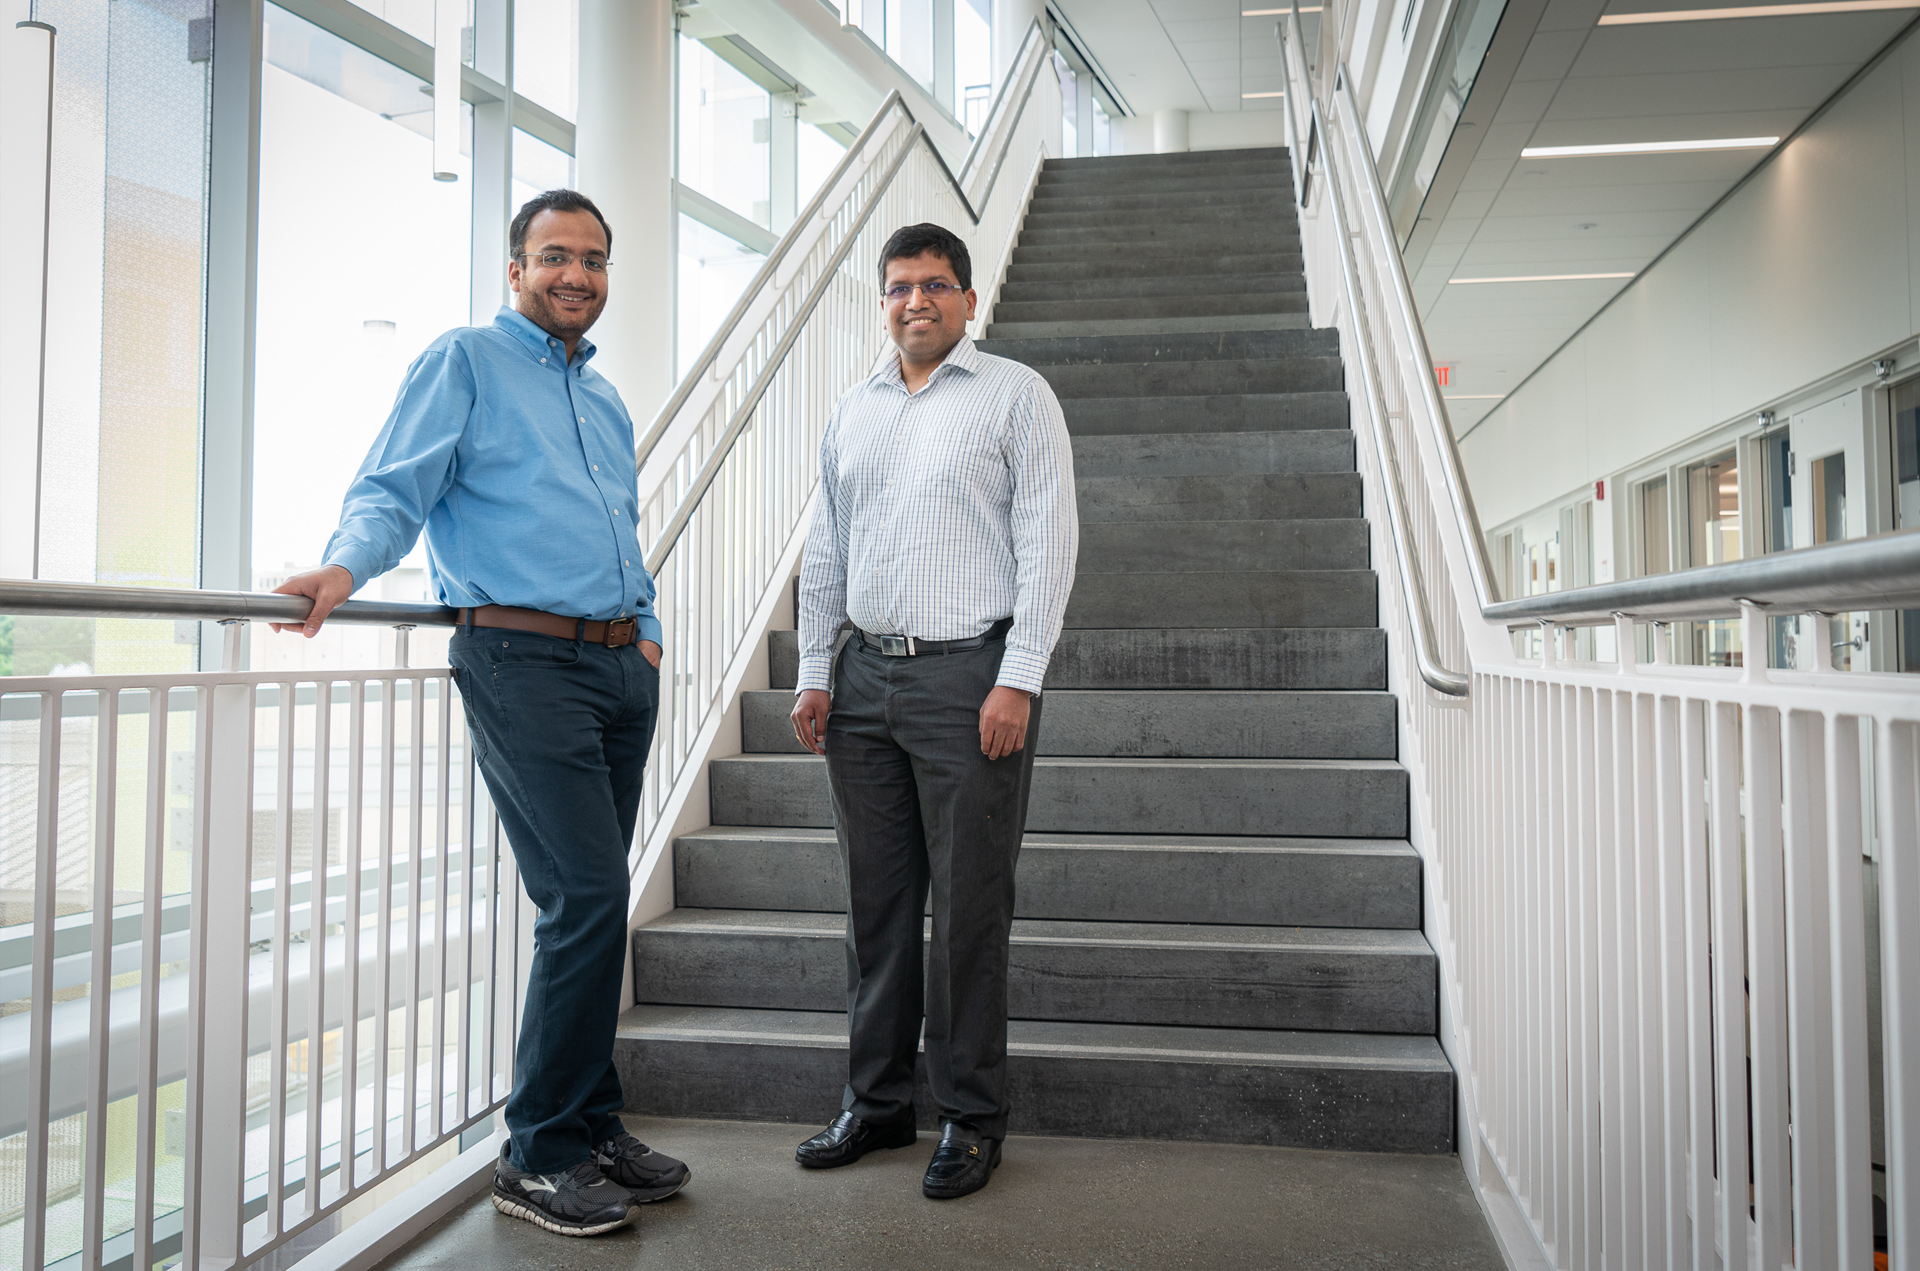 Two men, Rahul Panat and Vipul Goyal, standing in the stairway of Scott Hall on CMU's campus.